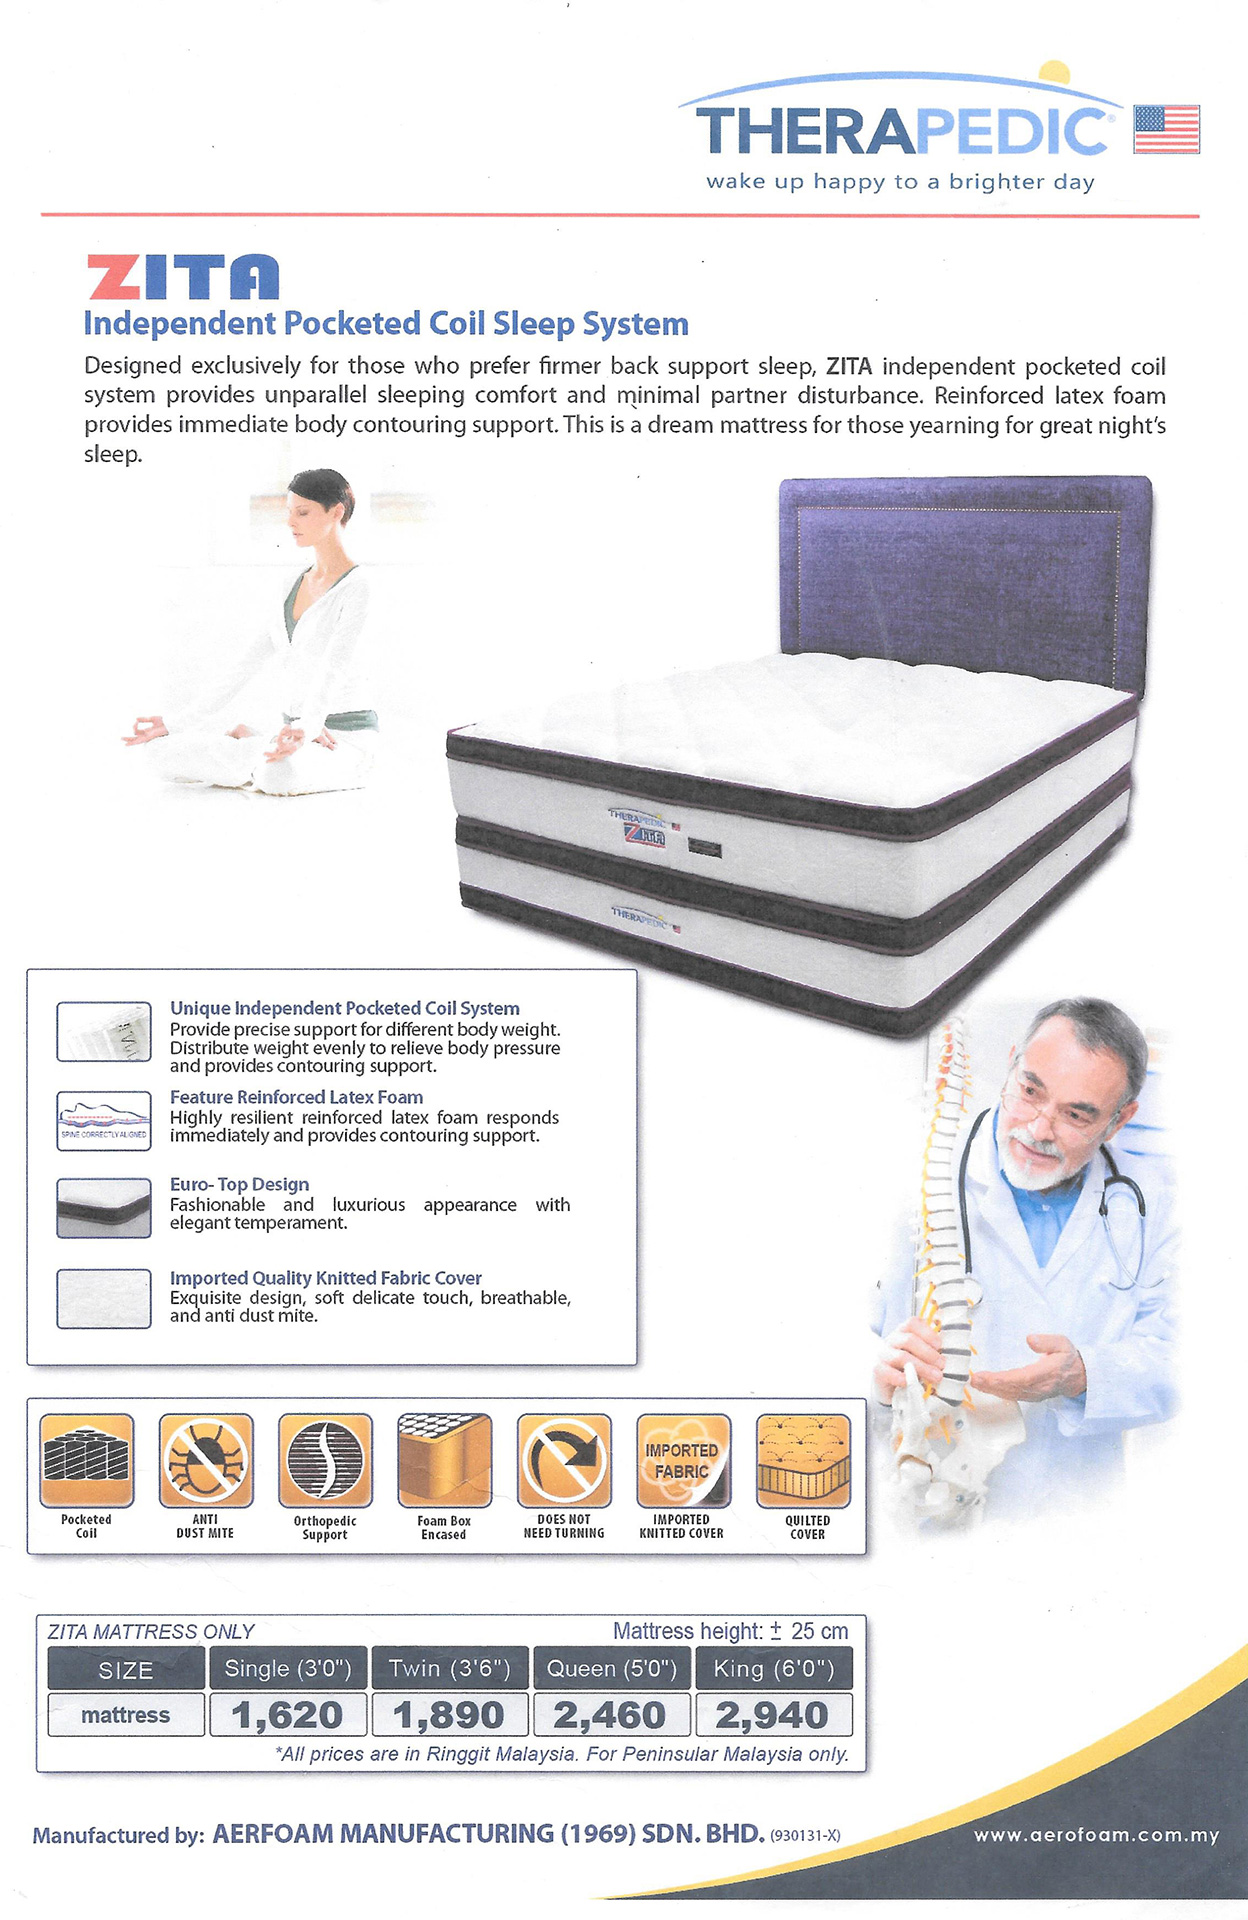 Konsen Furniture Design Therapedic Mattress